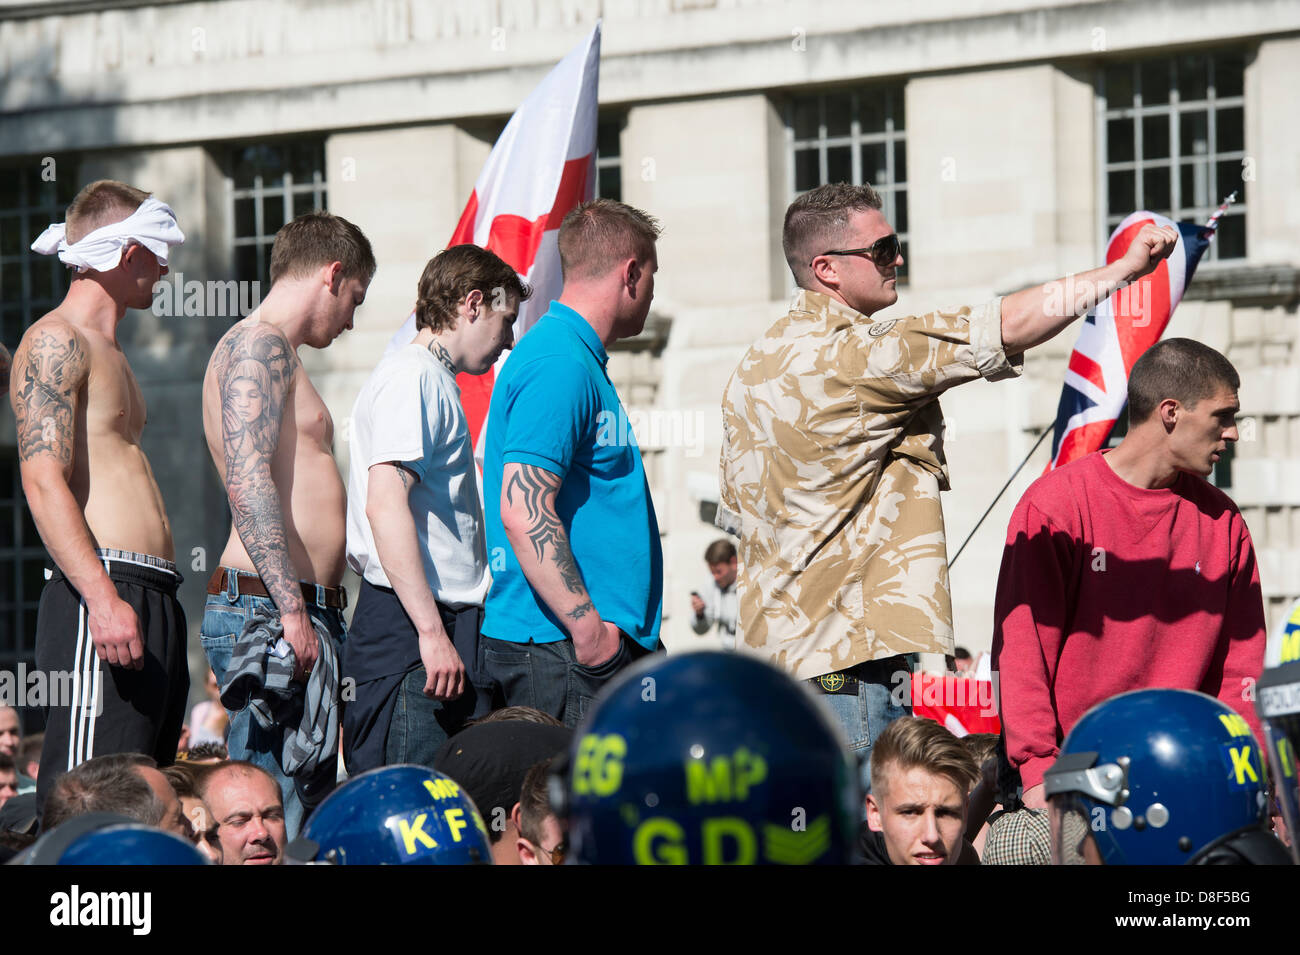 English Defence League EDL rally in front of Downing Street on May 27th 2013. EDL leader Tommy Robinson points at - Stock Image